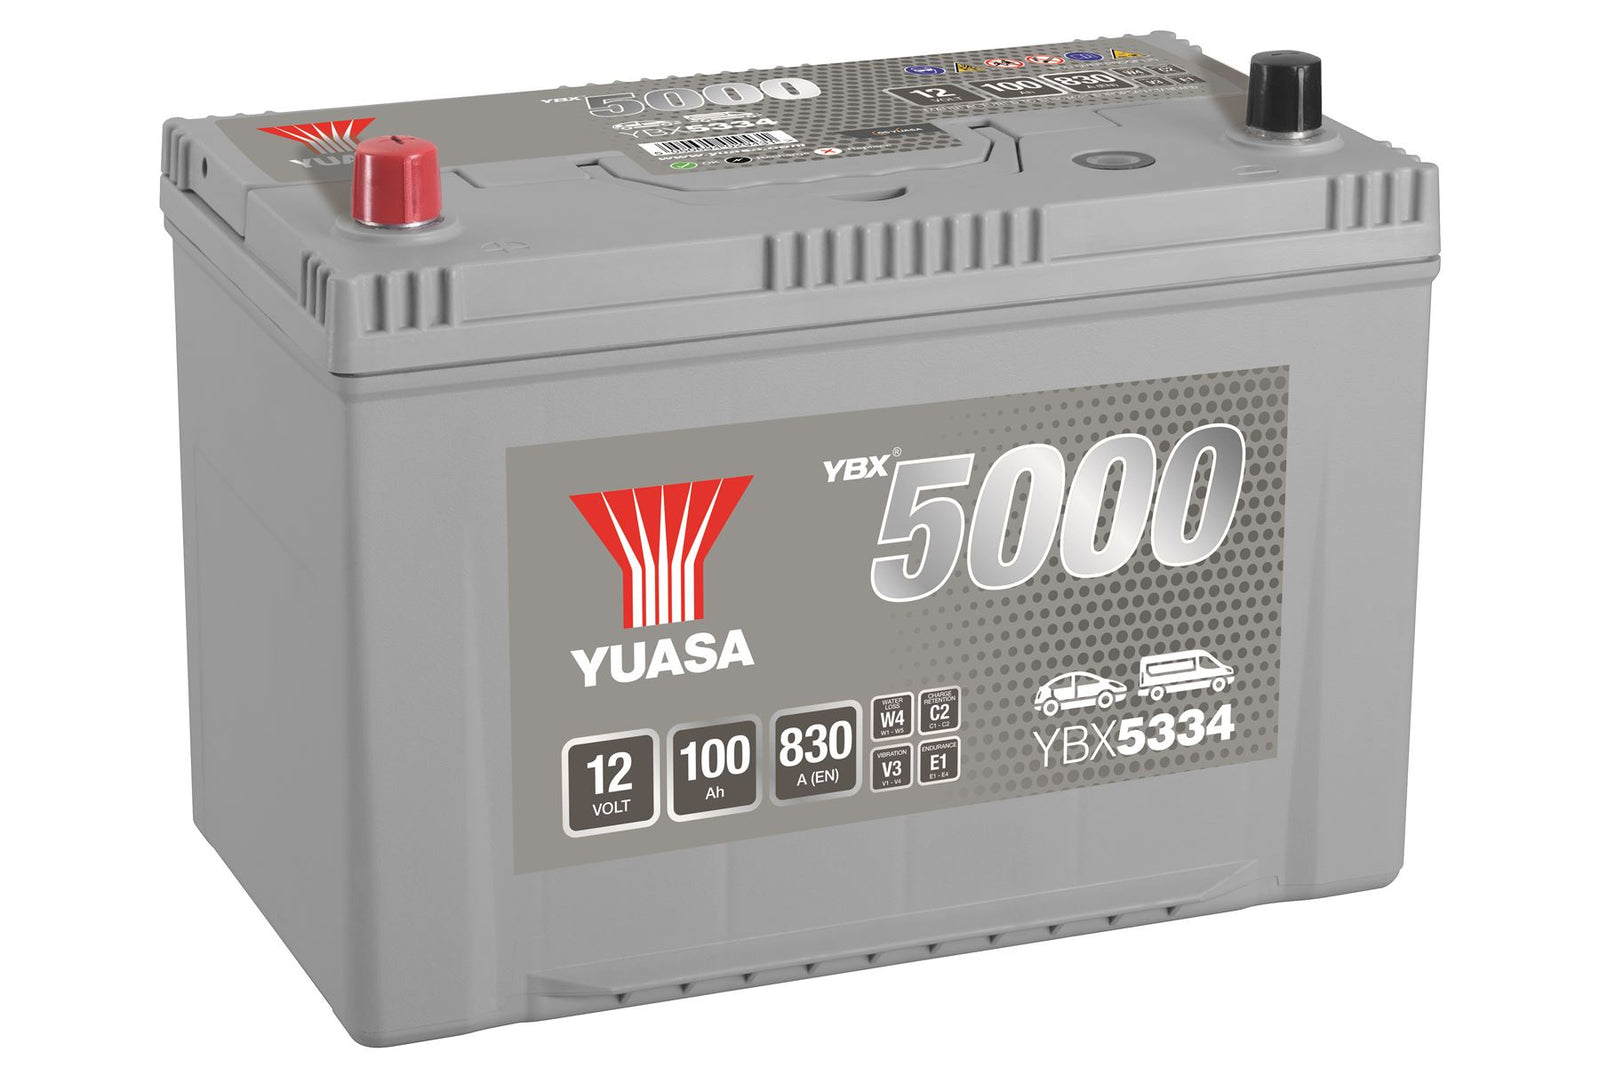 Yuasa YBX5334 Silver High Performance SMF Battery JP/KR JIS